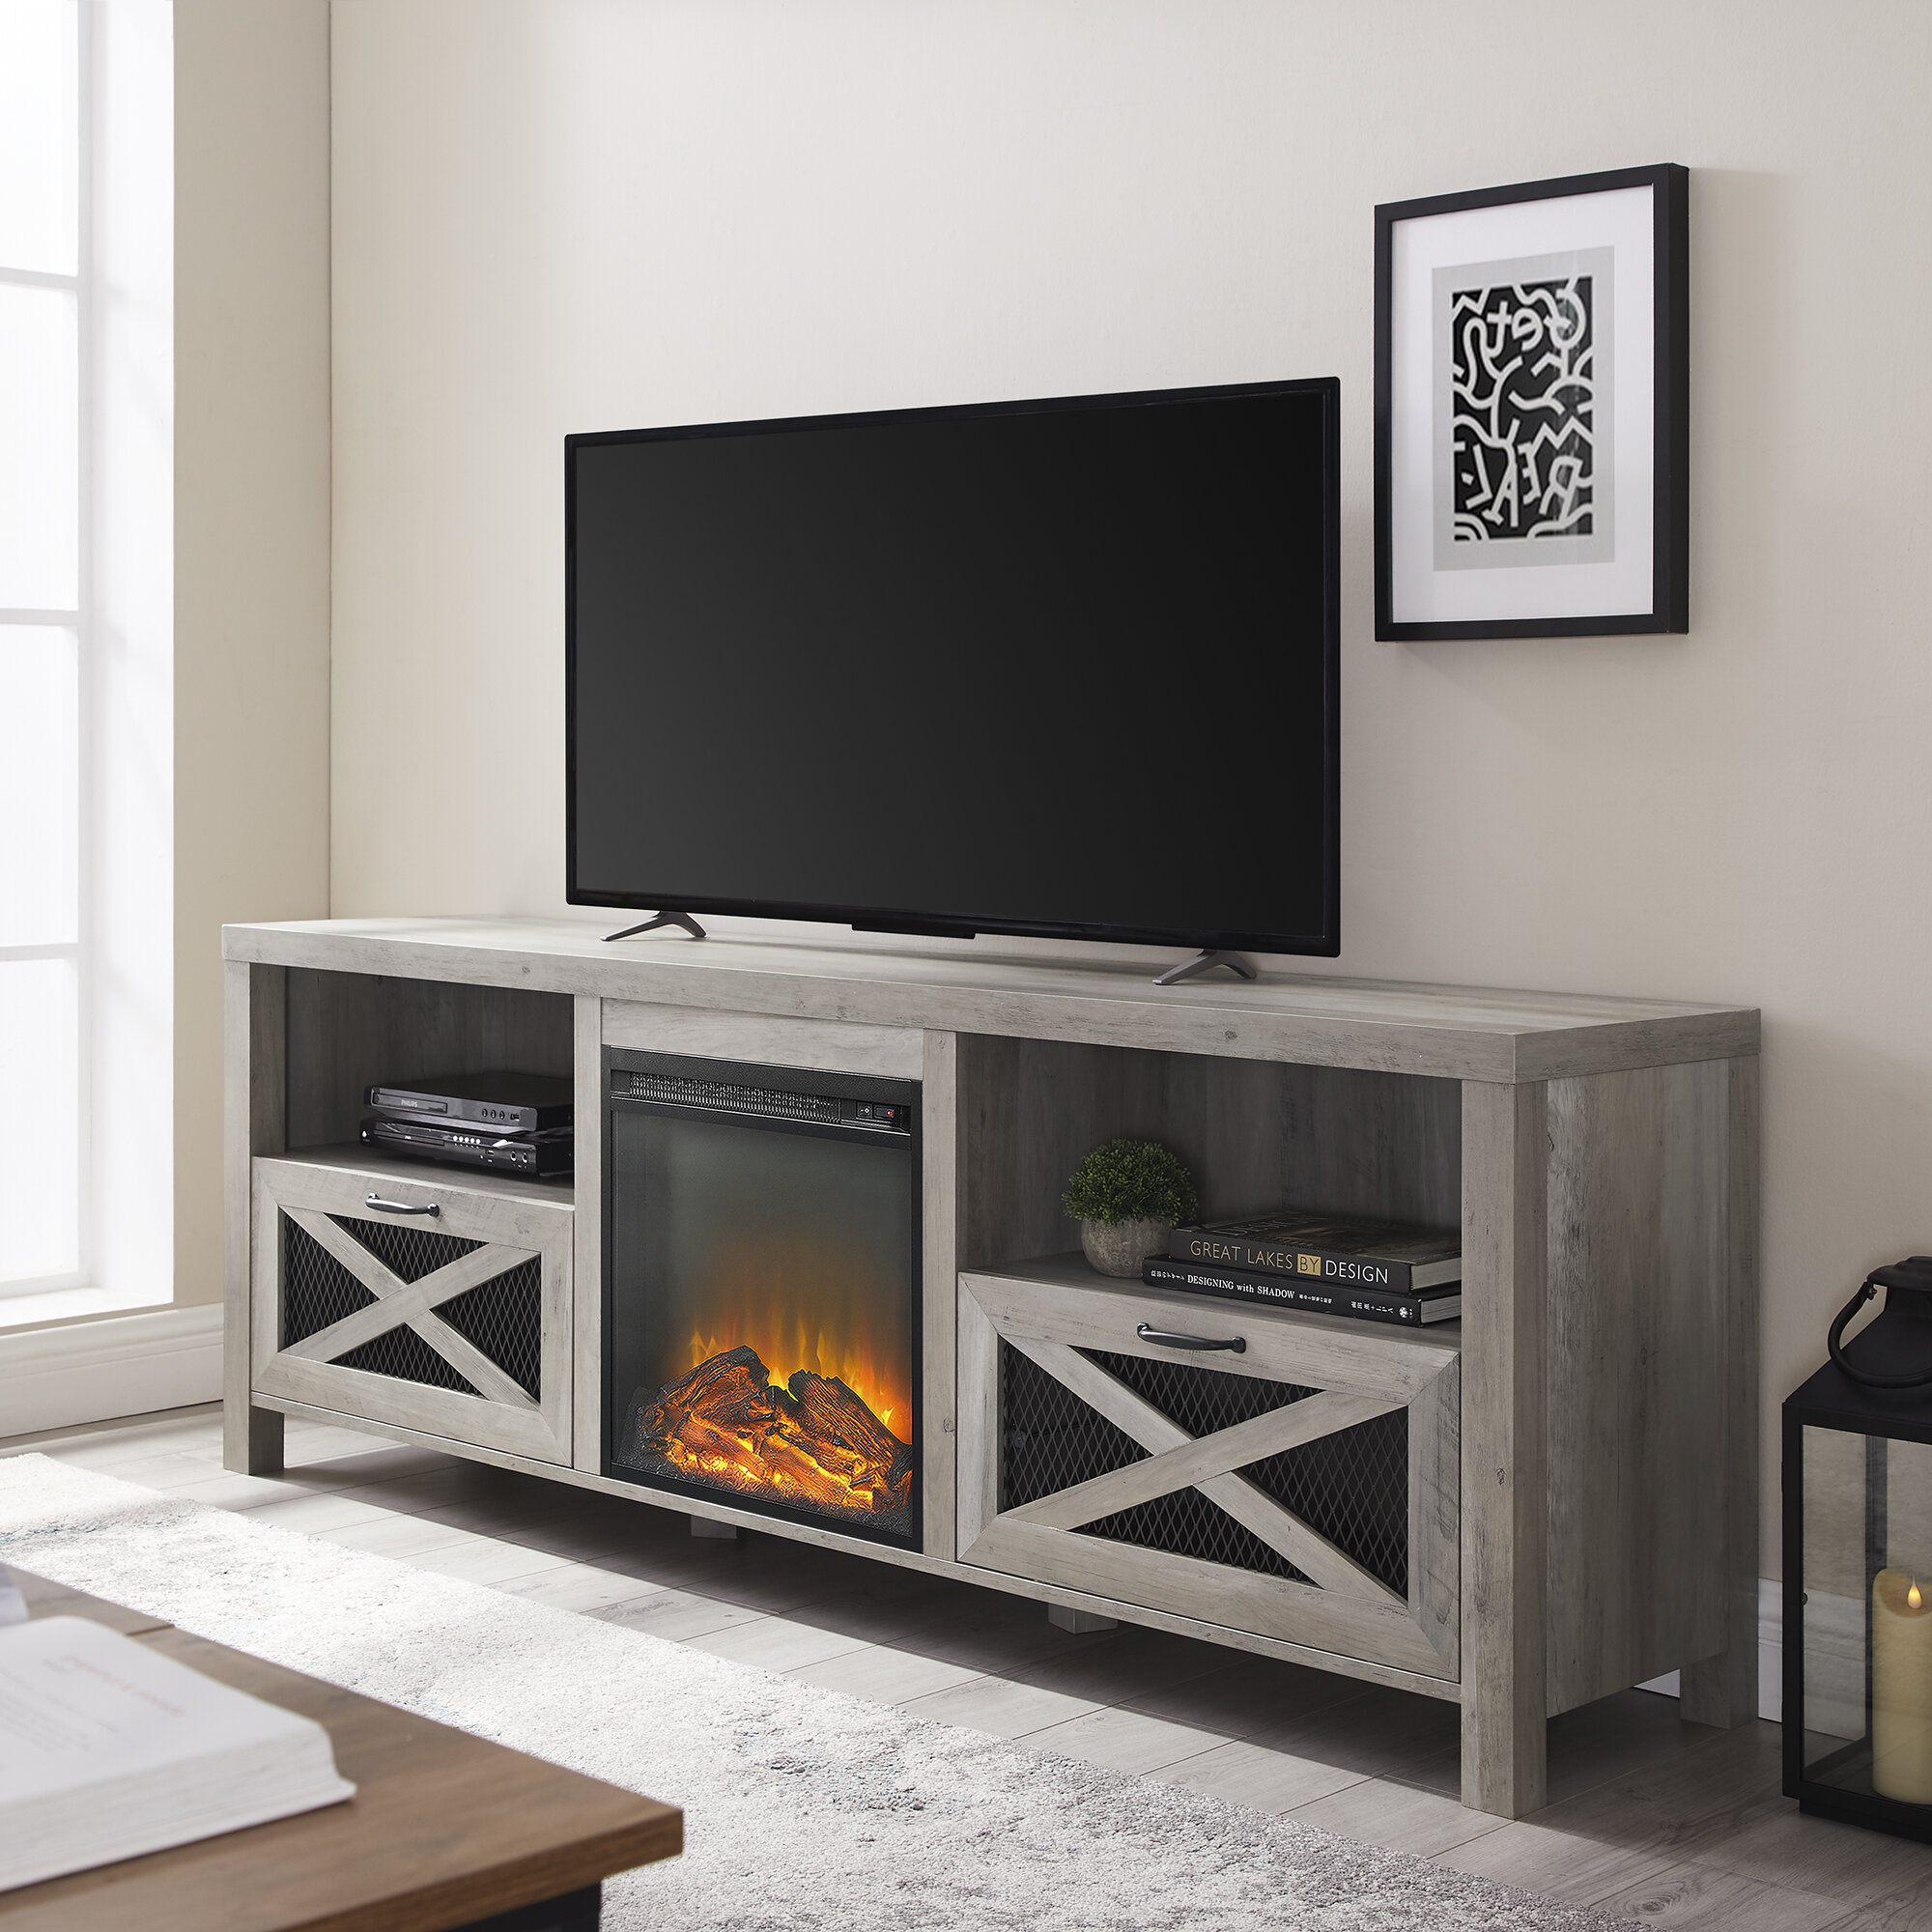 corr tv stand for tvs up to 70 with electric fireplace